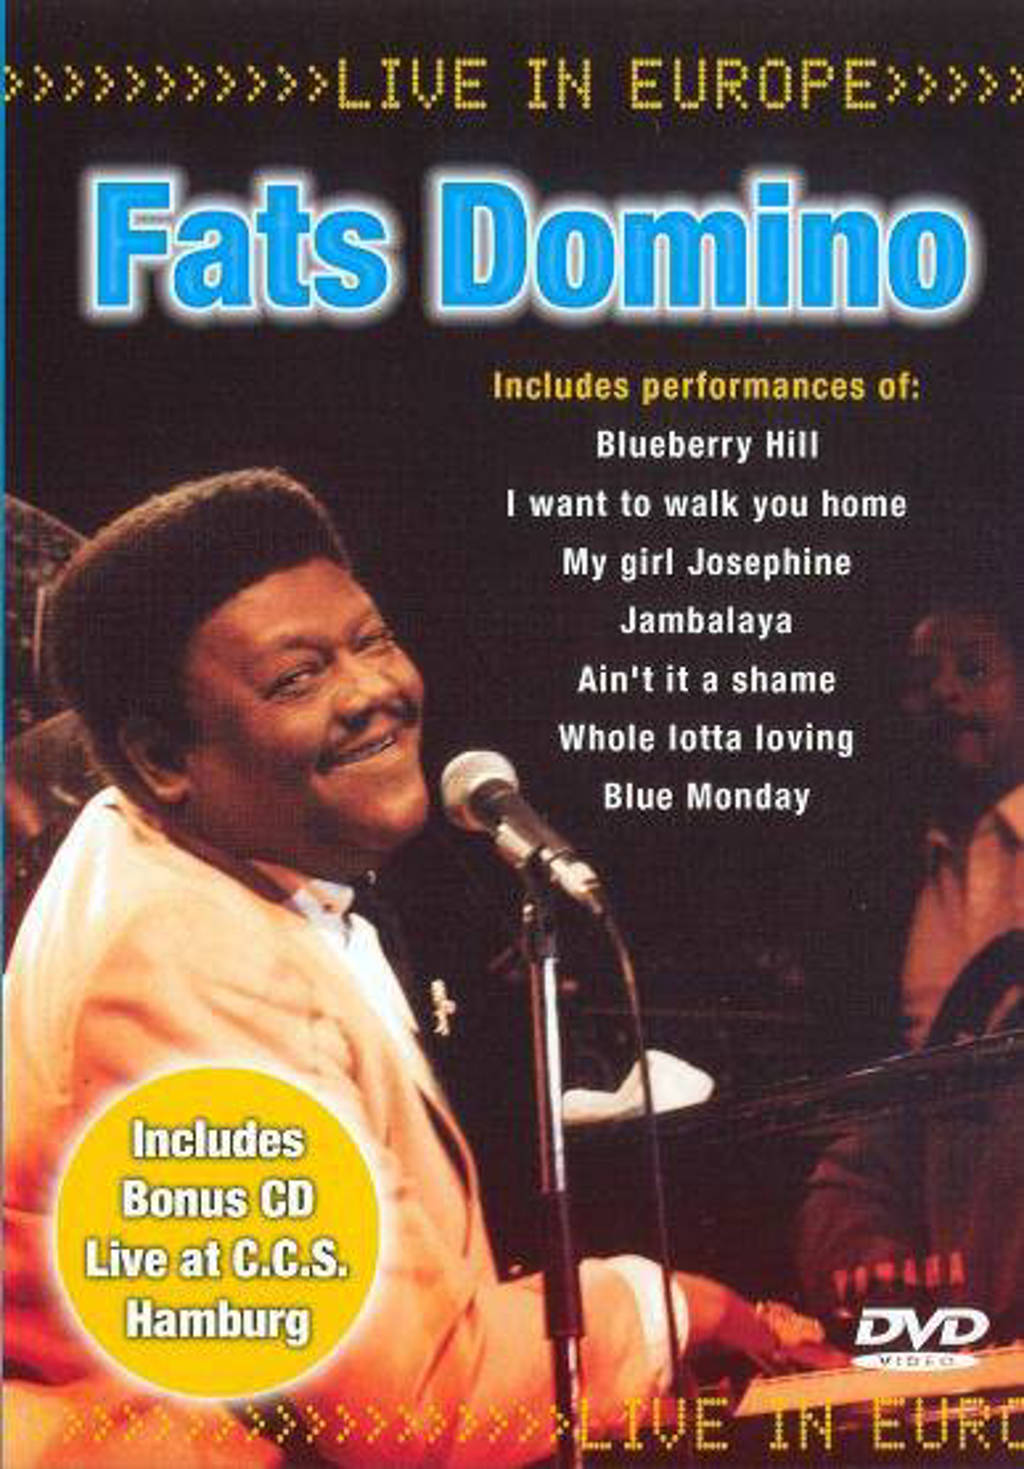 Fats Domino - Live in Europe (DVD)